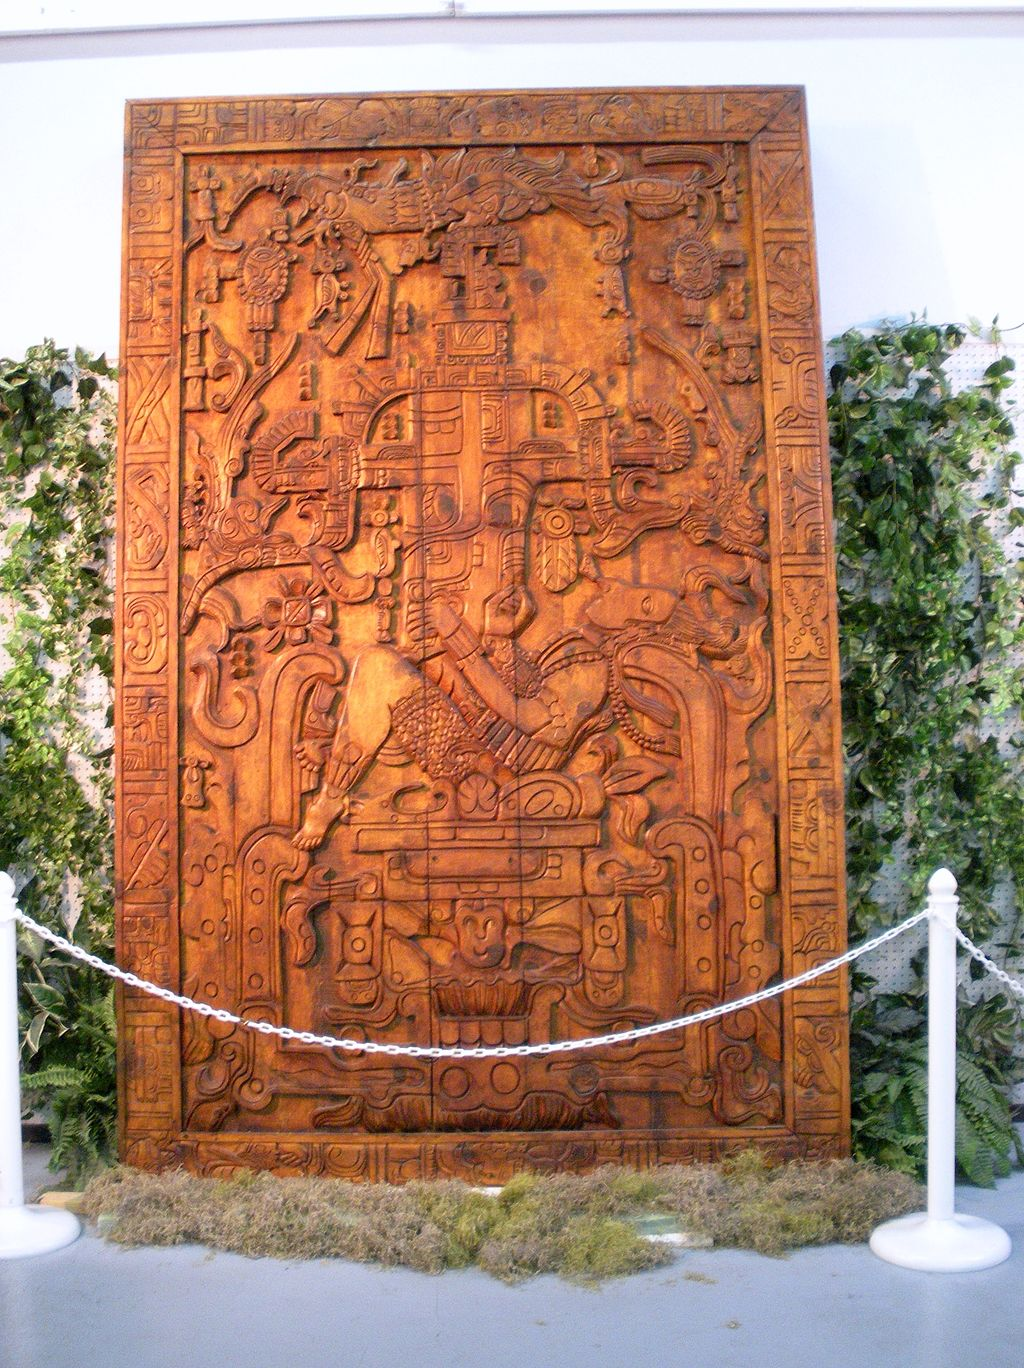 The Sarcophagus of Pakal and the Astronaut of Palenque-Replica_of_the_Sarcophagus_lid_of_Pacal_the_Great